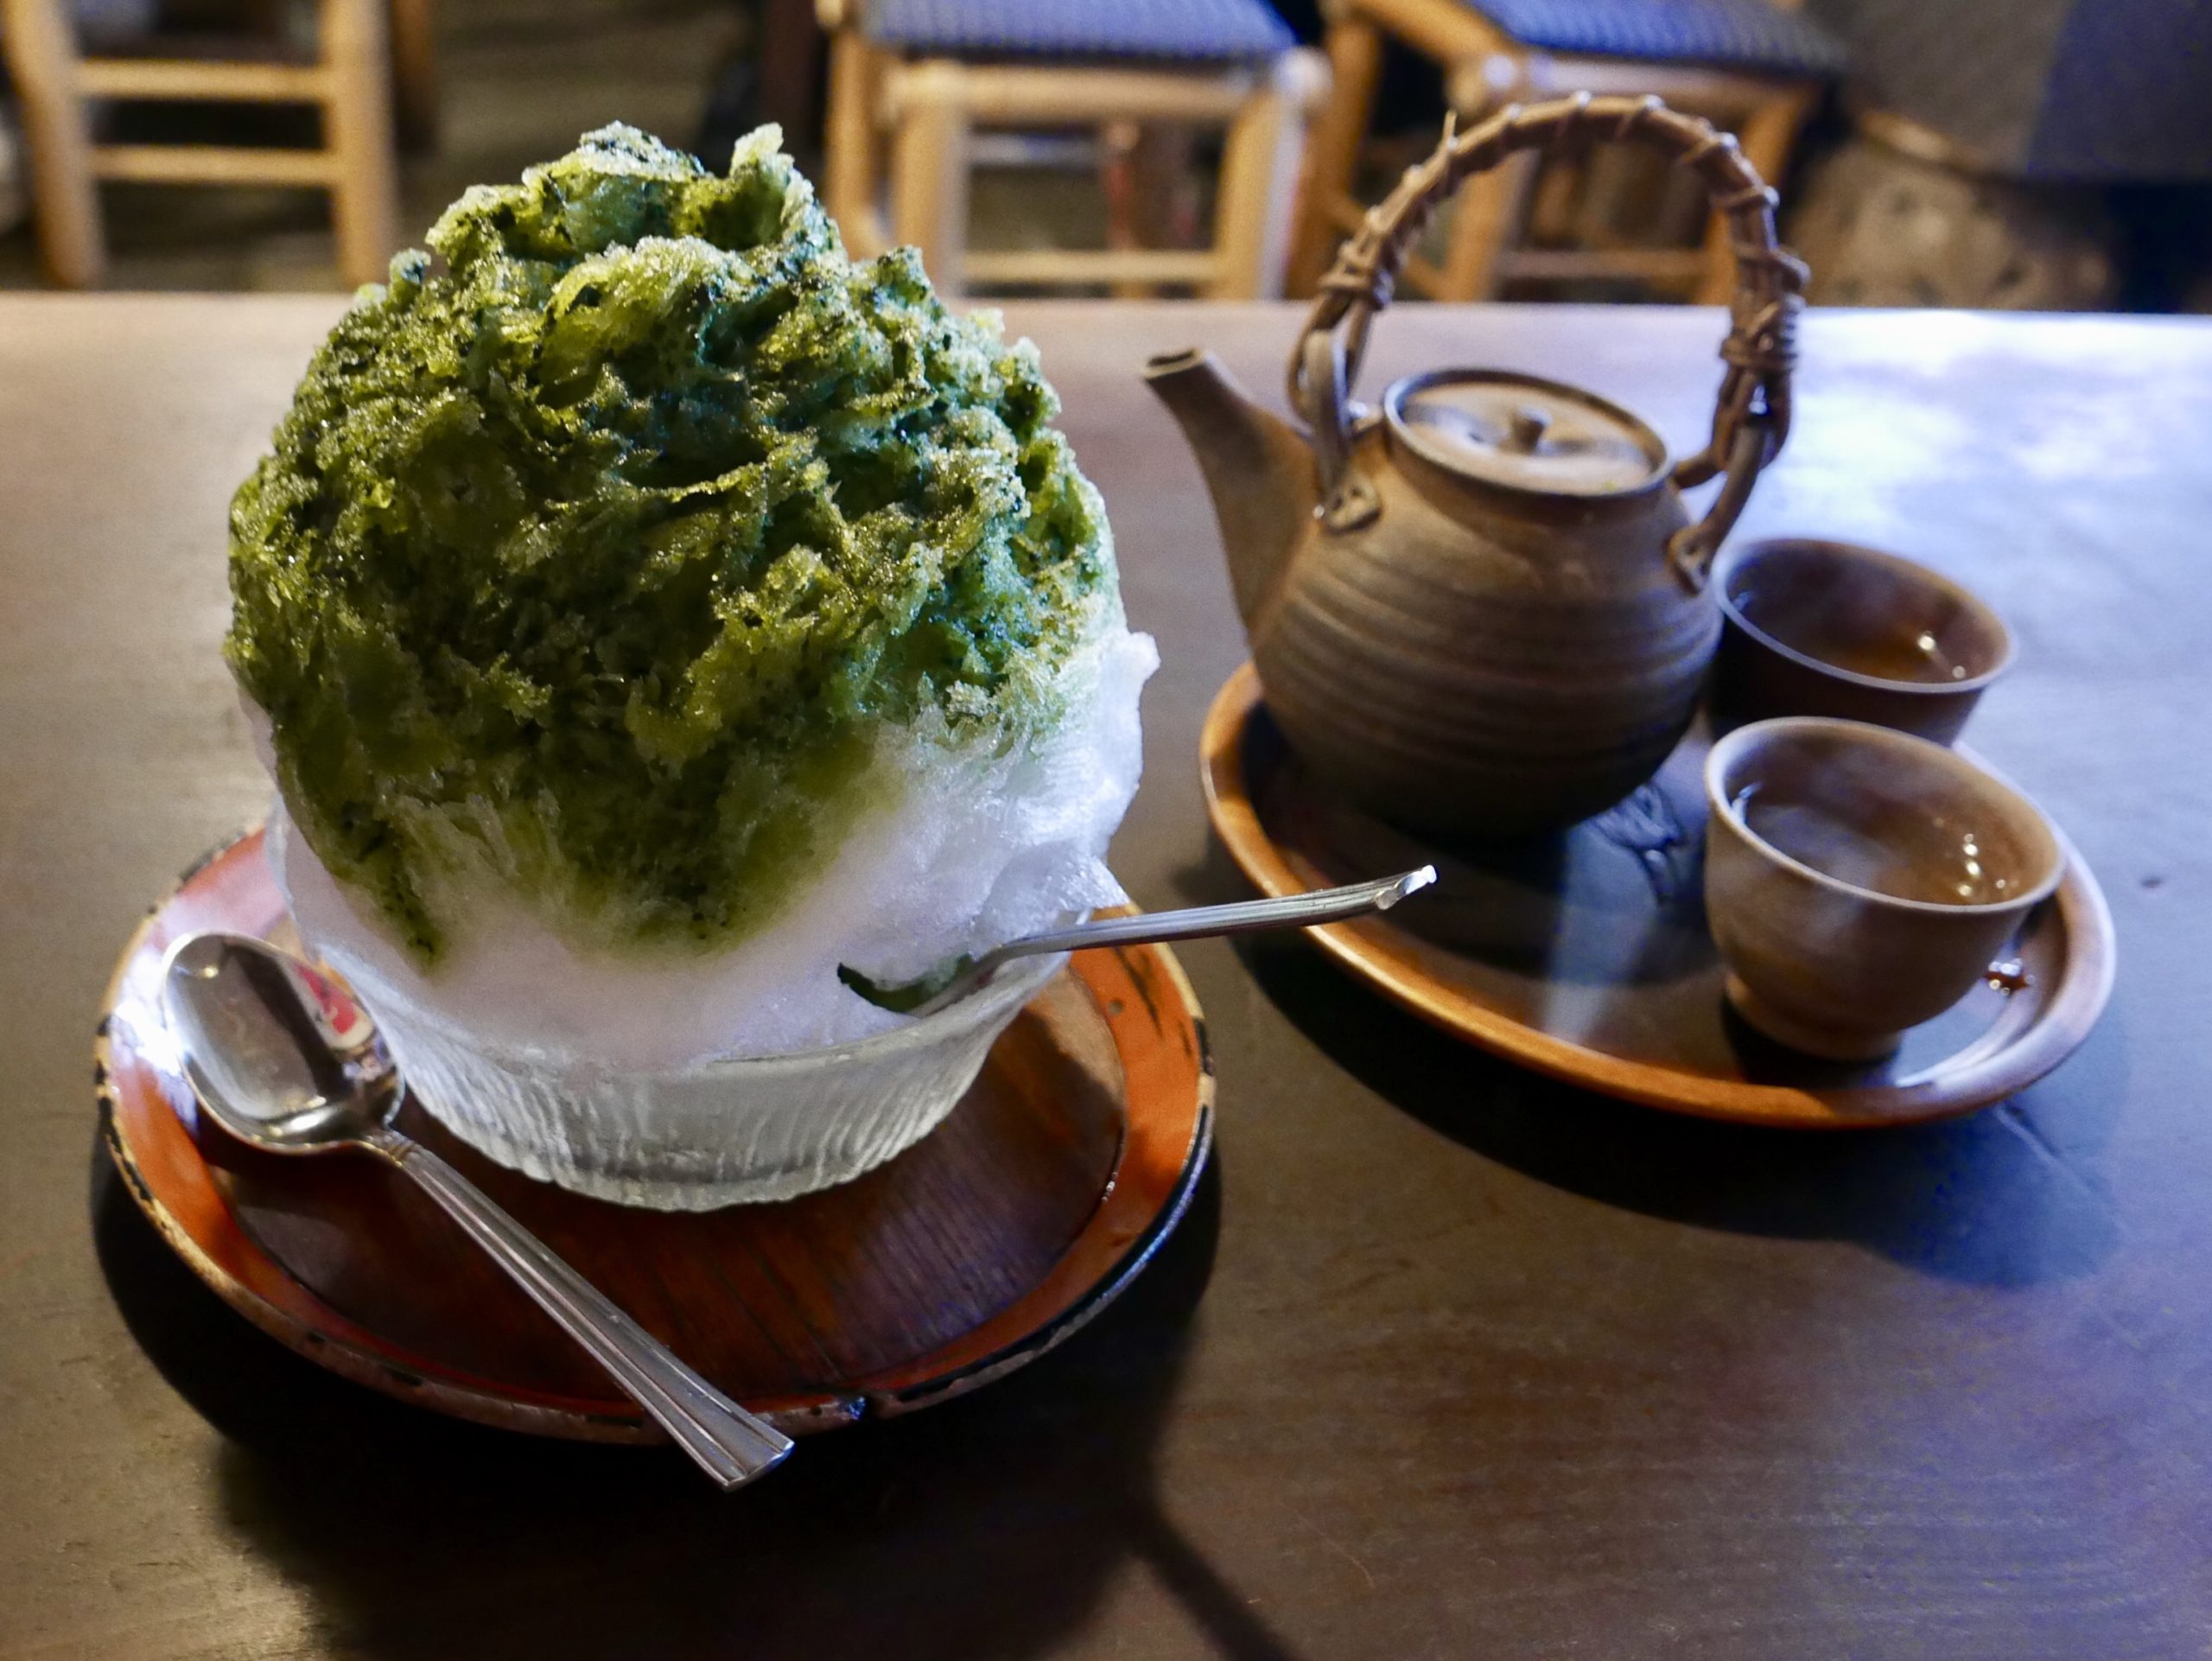 Matcha ice and green tea